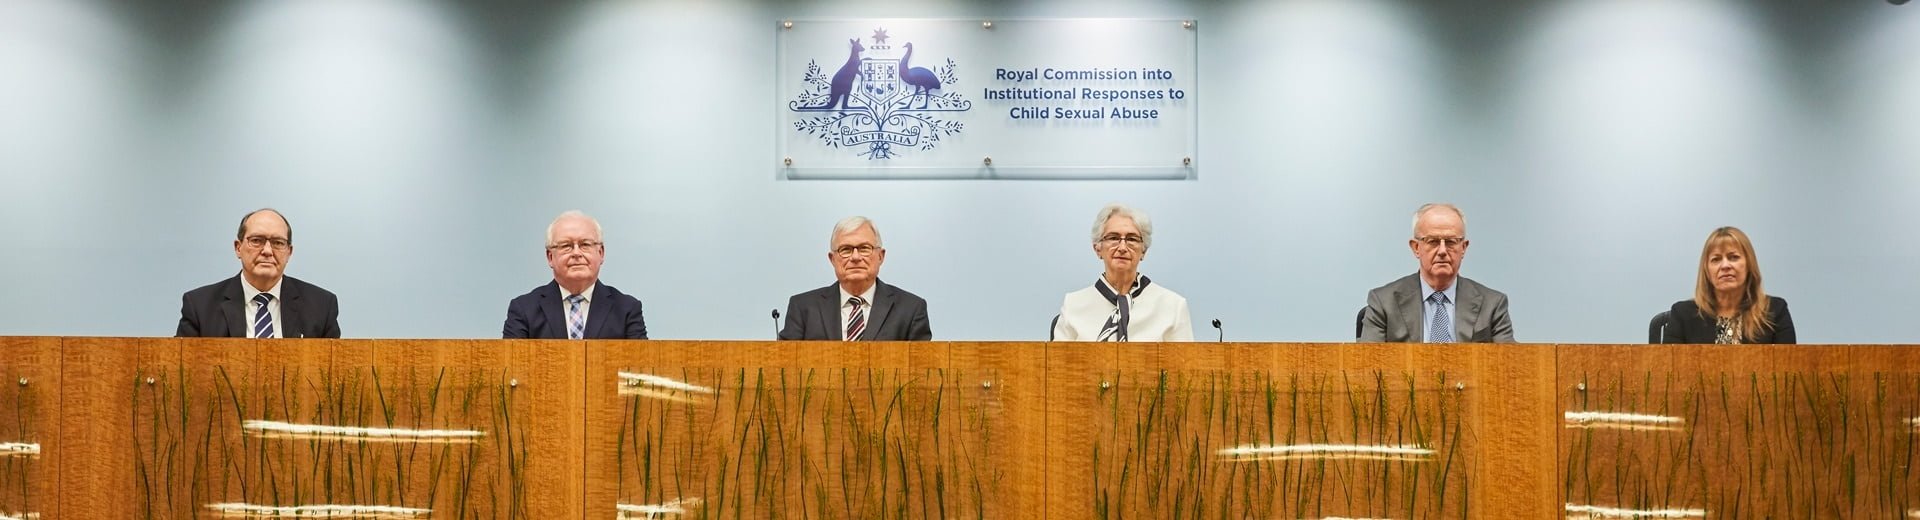 Royal Commission Into Institutional Abuse